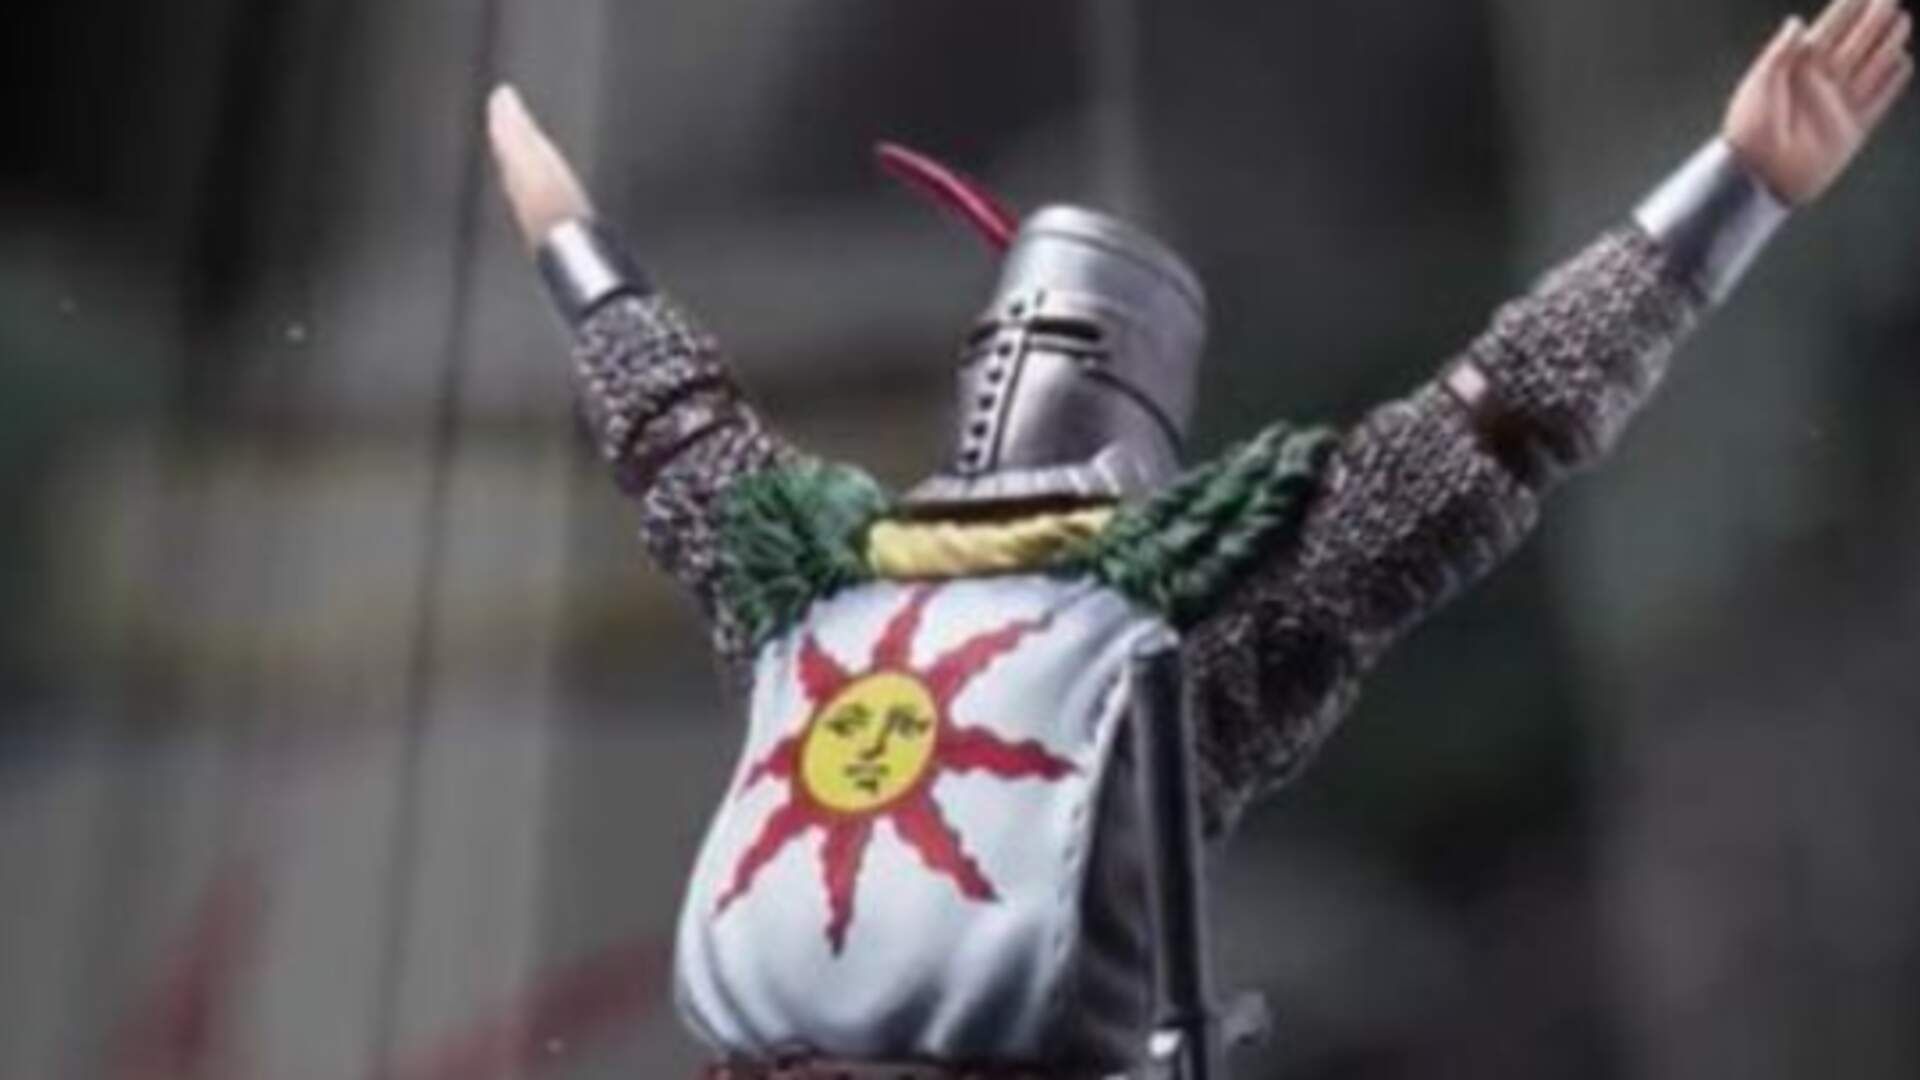 Is the Praise the Sun Emote Locked to the Solaire Amiibo? And Other Questions Answered